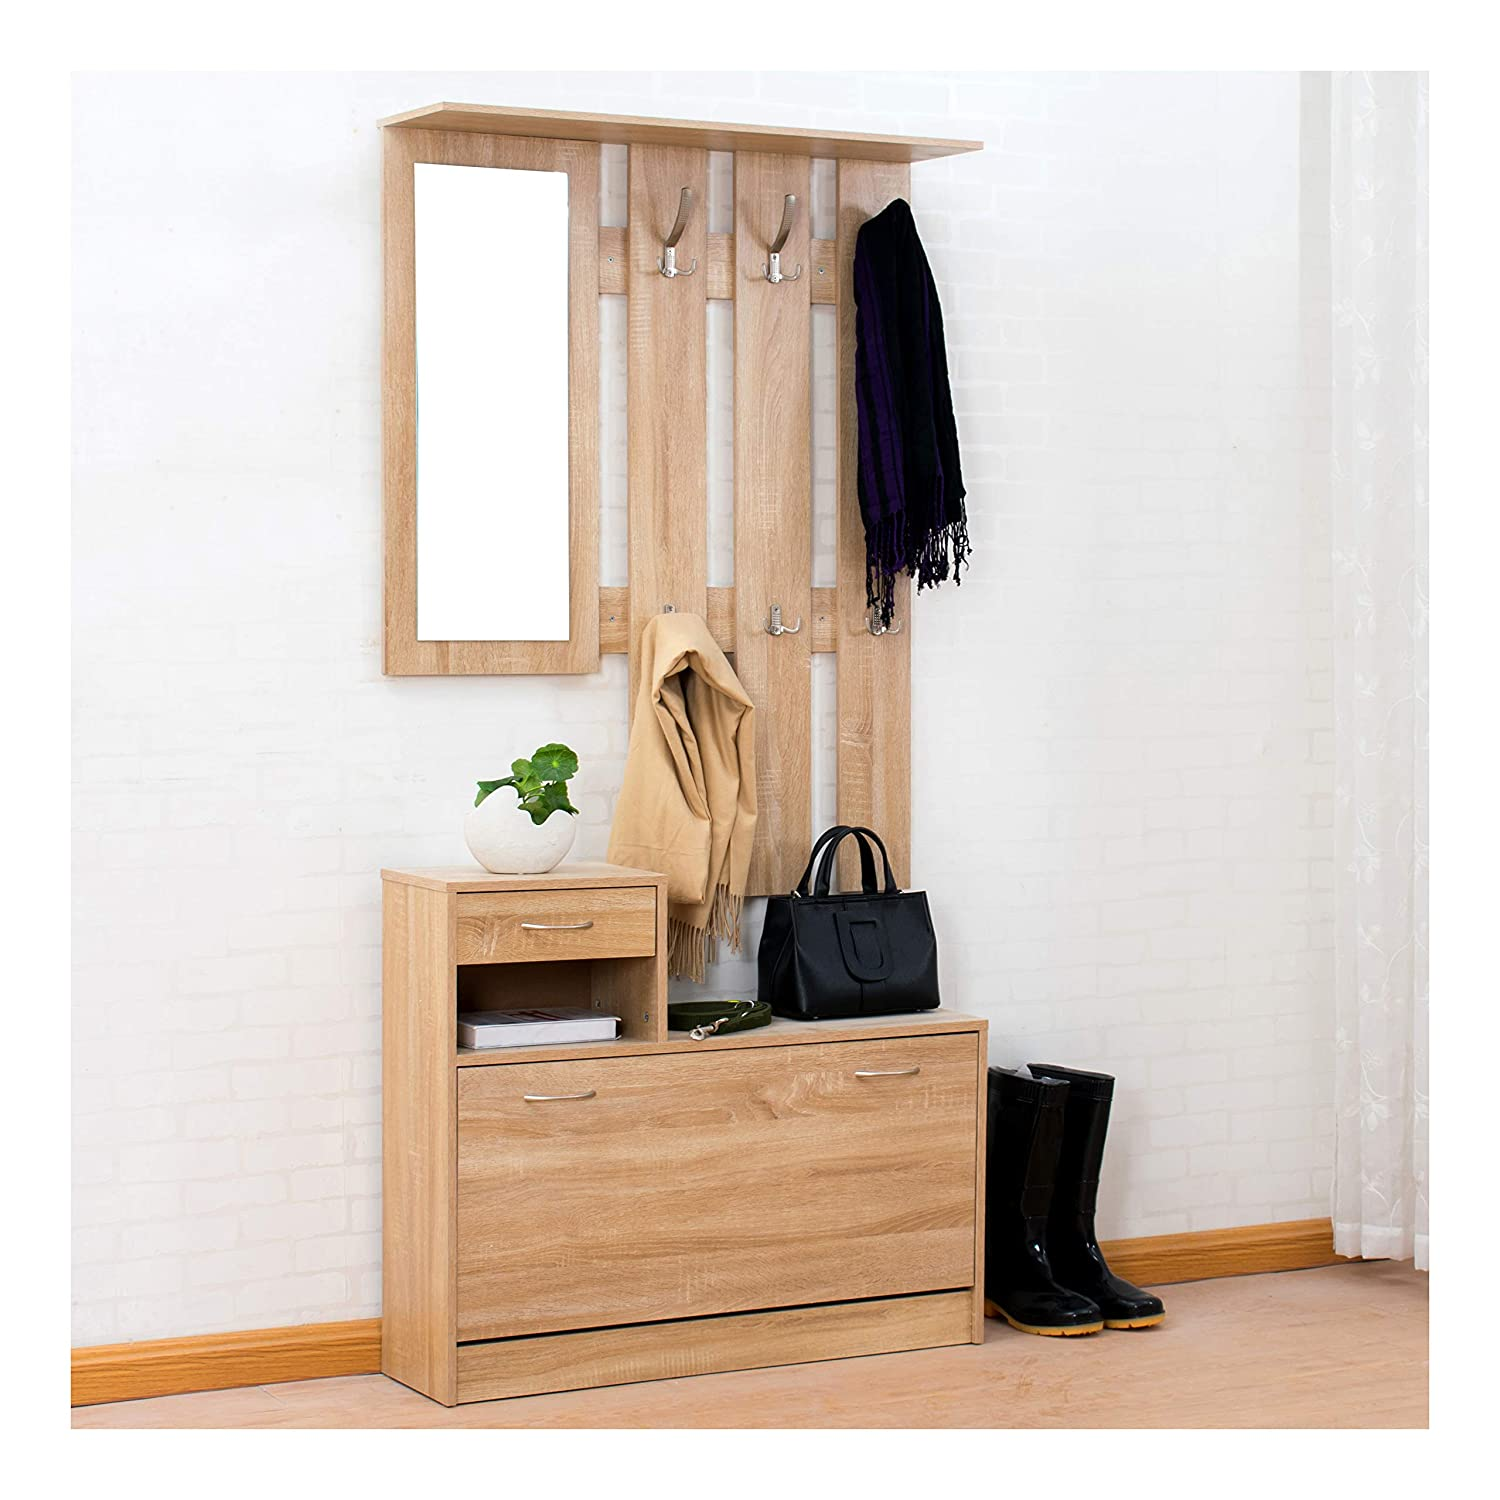 Cherry Tree Furniture Oak Colour Hall Tree Coat Stand Shoe Storage Unit with Floating Coat Hanging Rack with Mirror